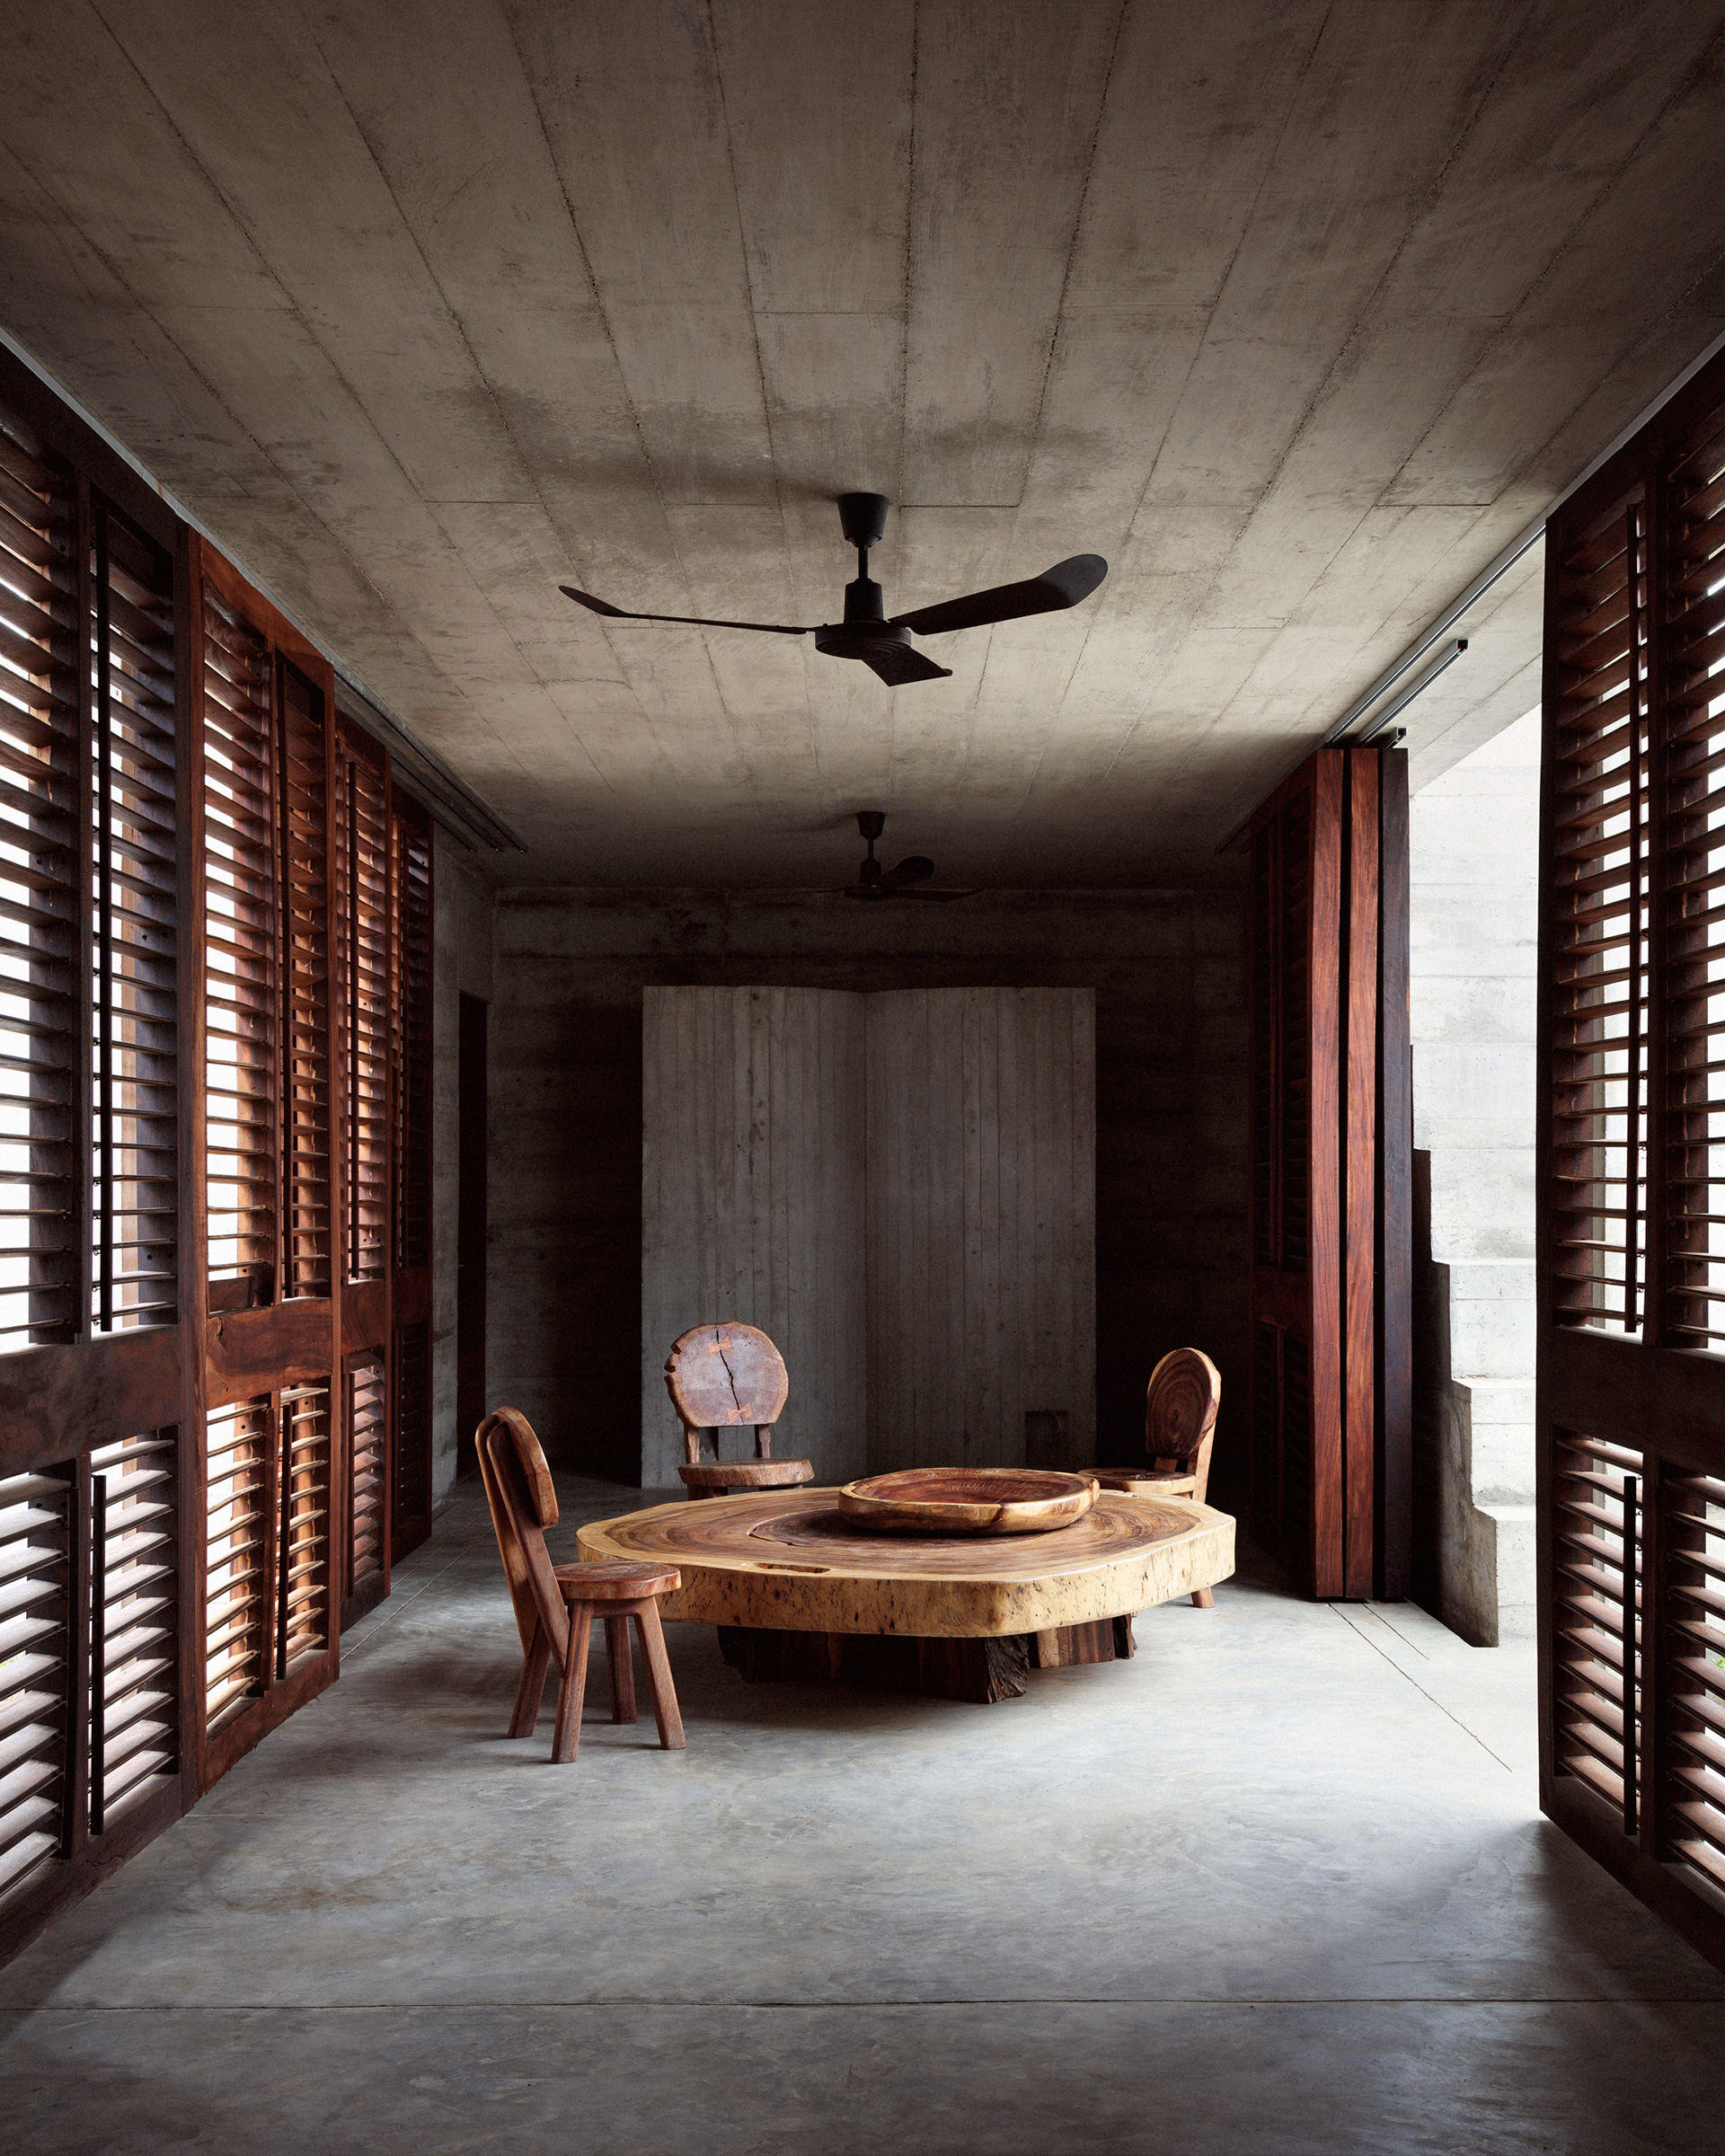 The dining area in the central courtyard | Mexico | Ludwig Godefroy |STIRworld